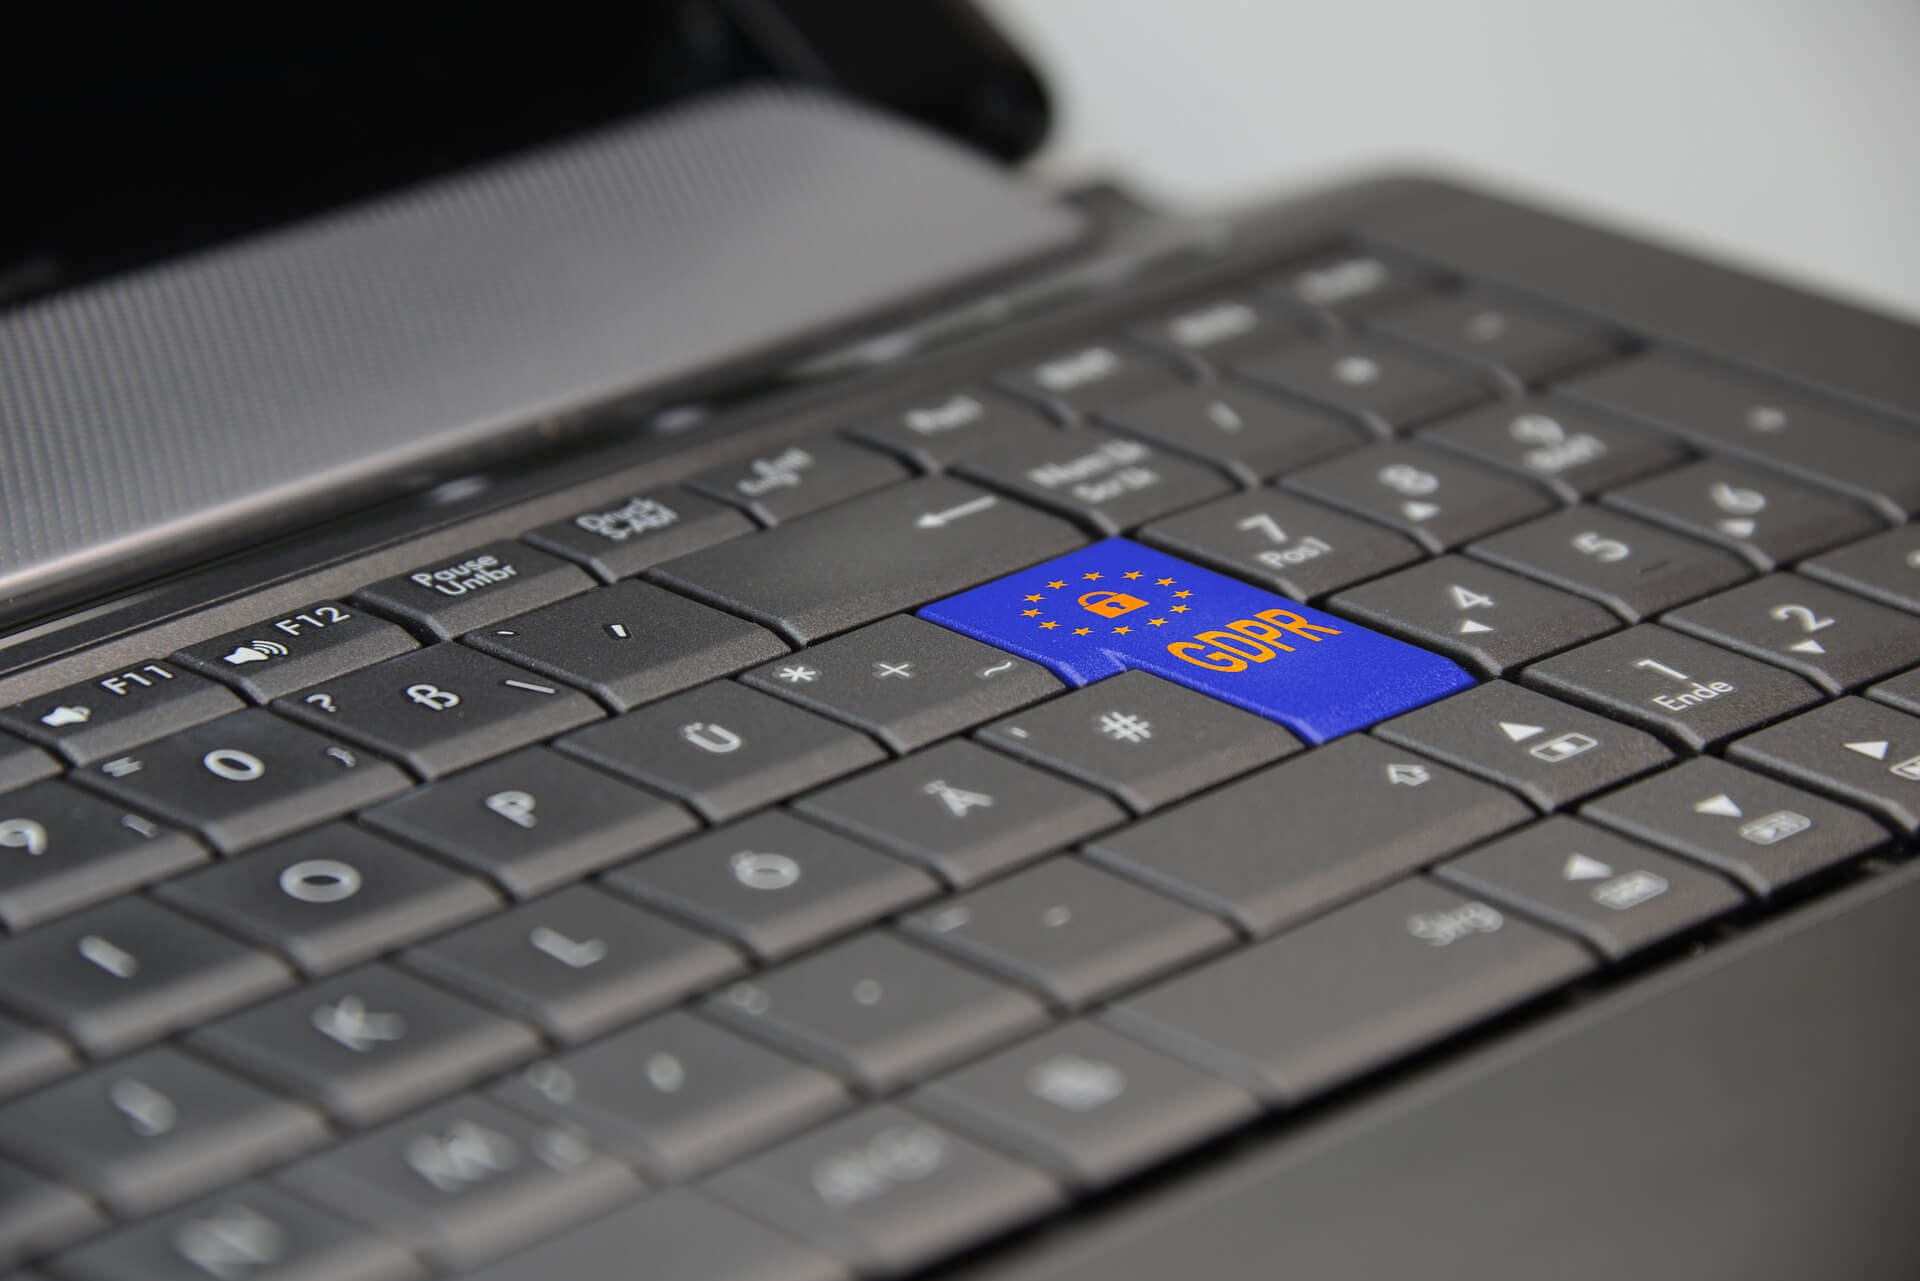 EU GDPR Data Privacy Policy Update